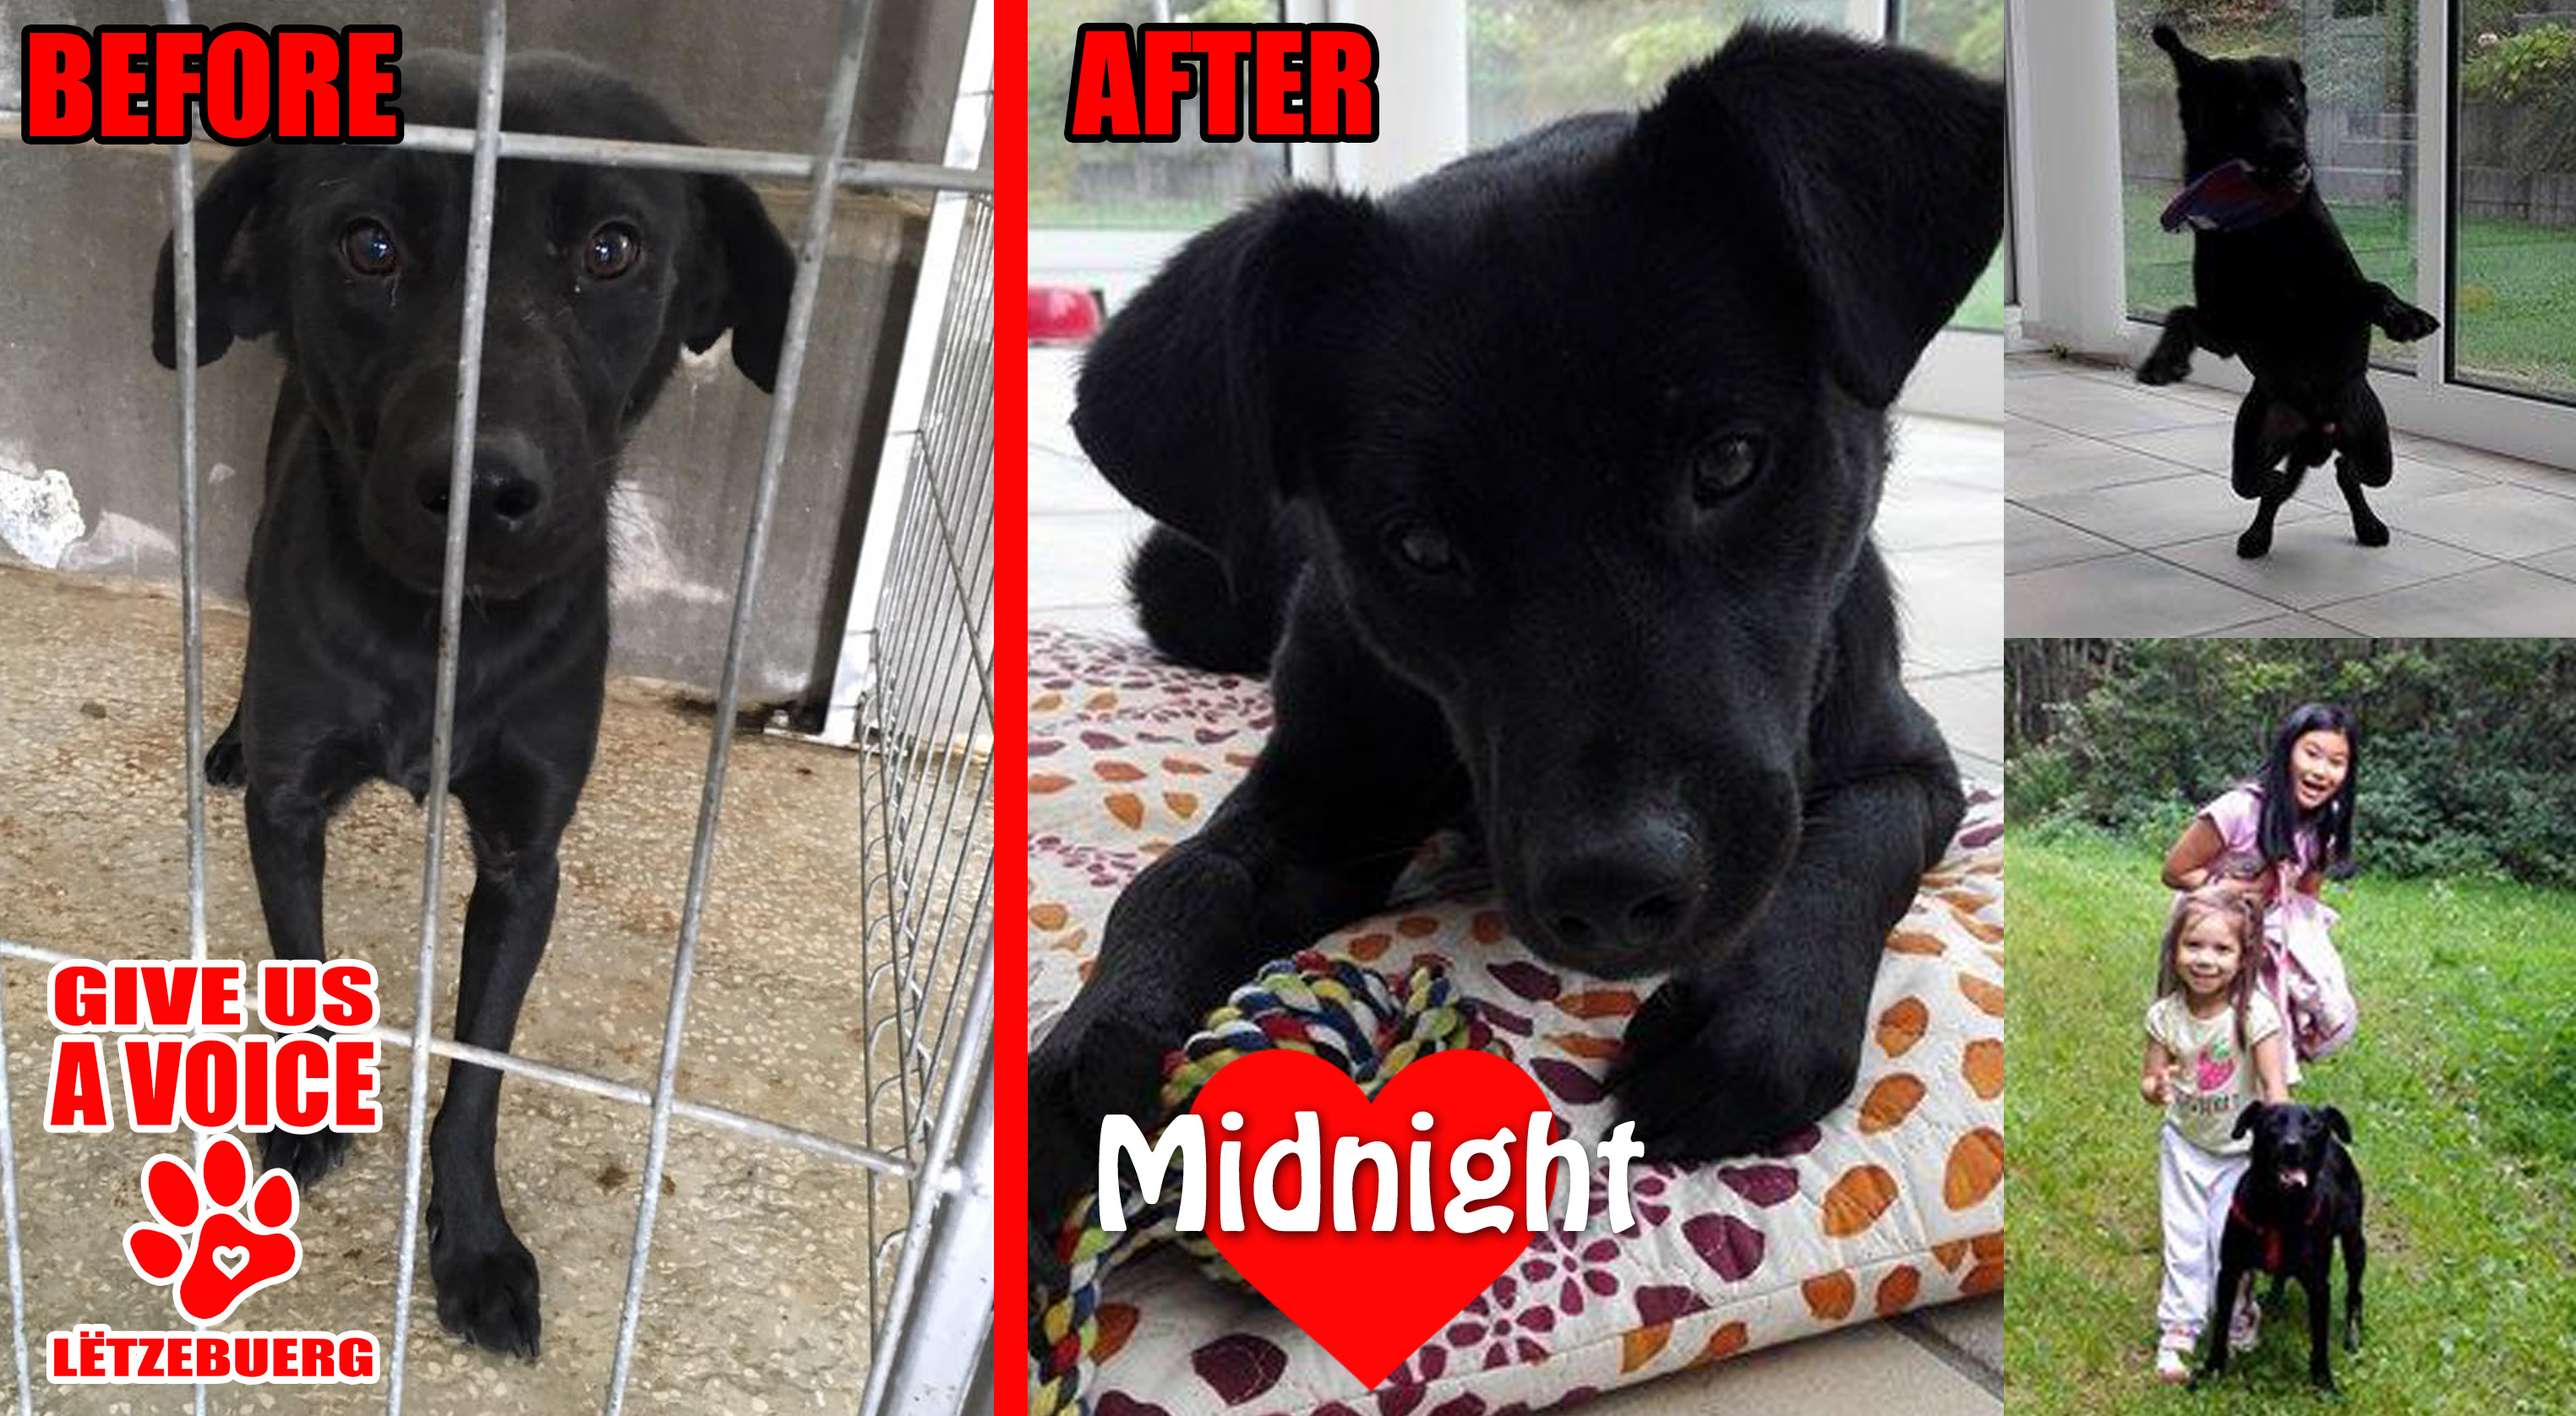 midnight-before-and-after-copy